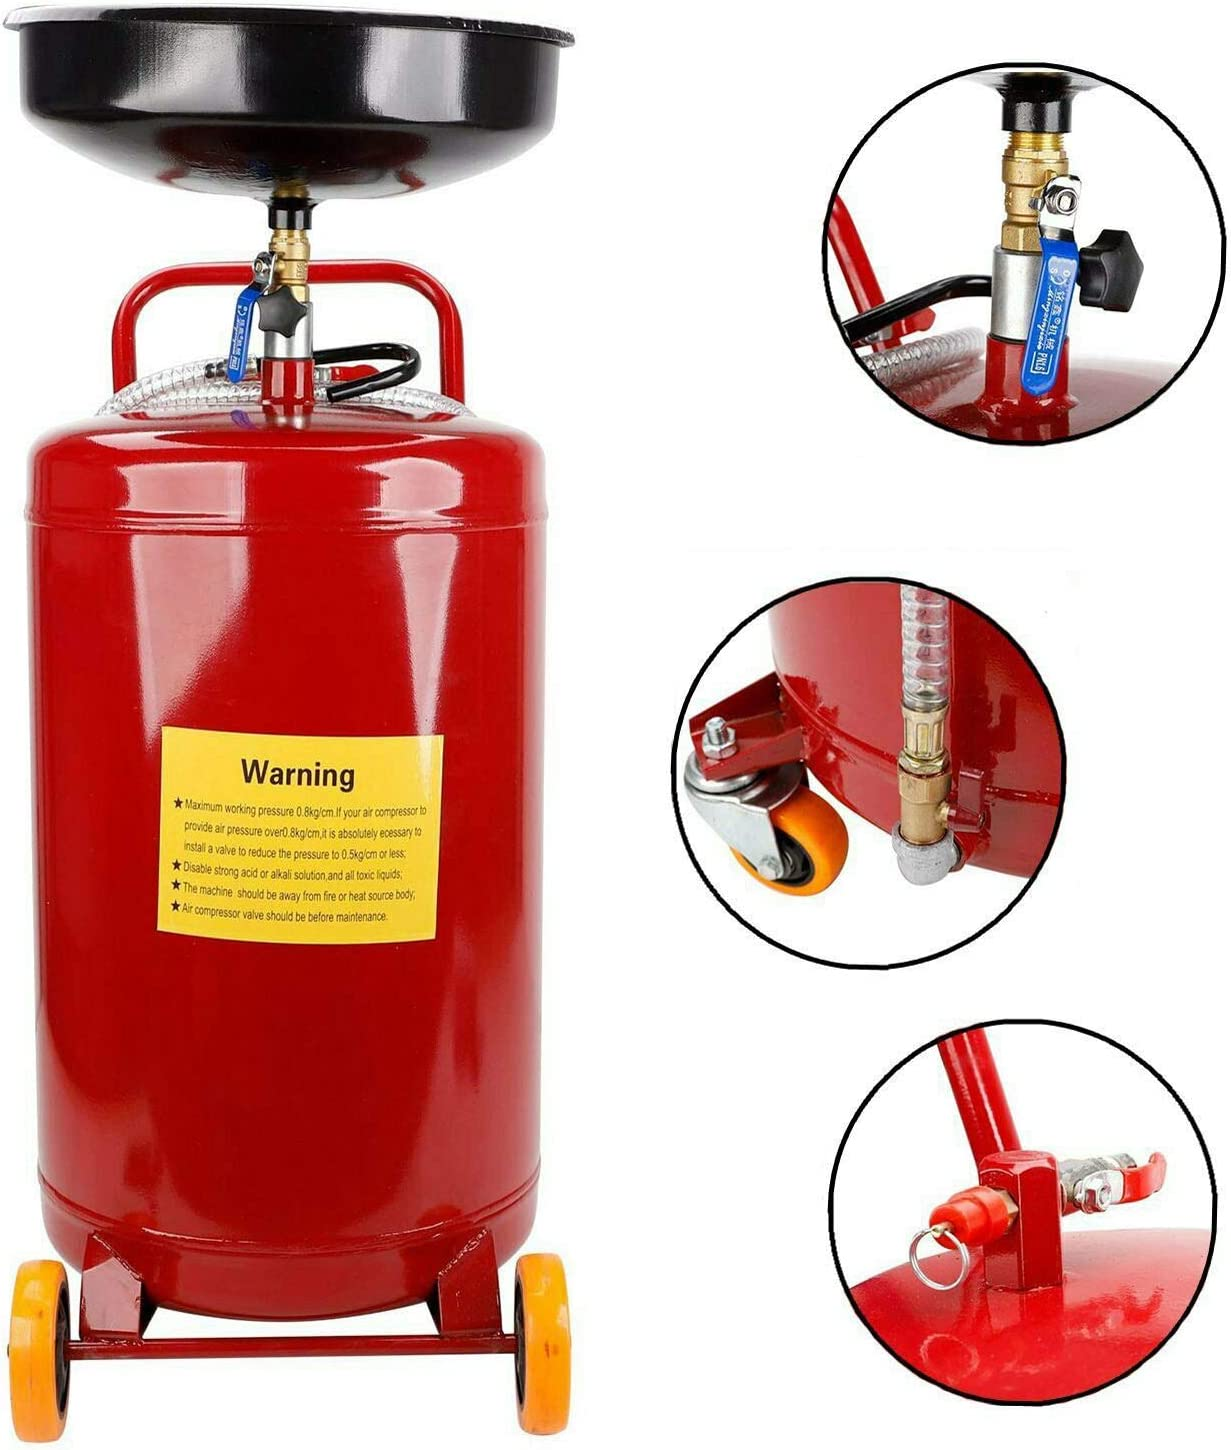 Amazon Com Ay Autoparts 20 Gallon Gas Fuel Diesel Caddy Transfer Tank Container Storage Waste Oil Drain Tank Air Operated Air Pressure Pump Automotive